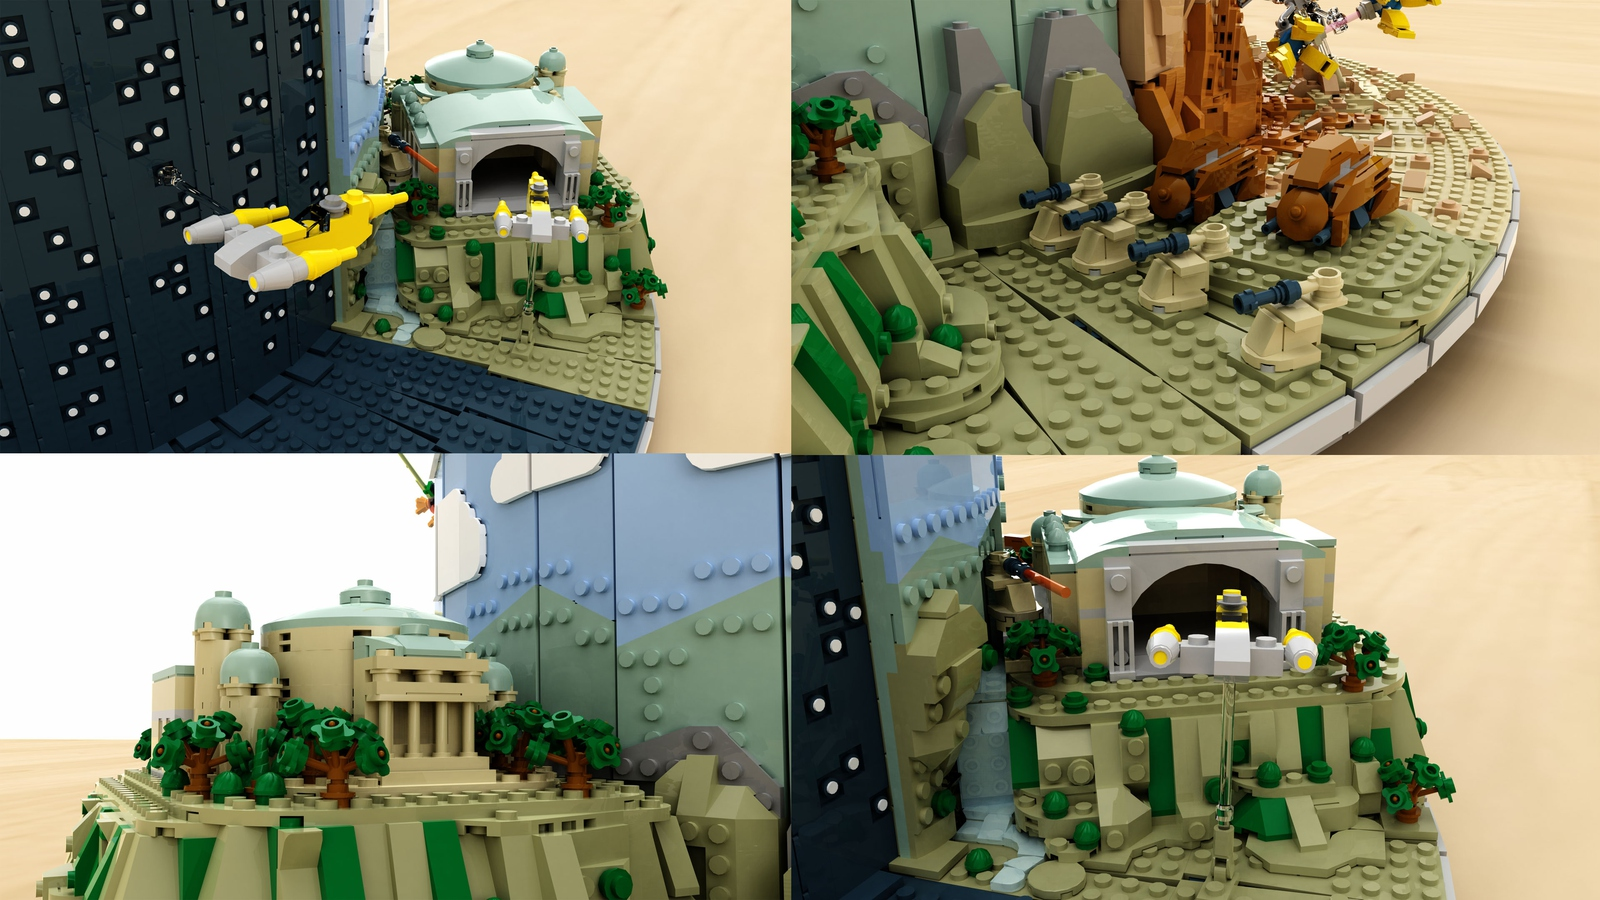 lego-star-wars-the-phantom-menace-diorama-naboo-krakenbrix-ideas zusammengebaut.com